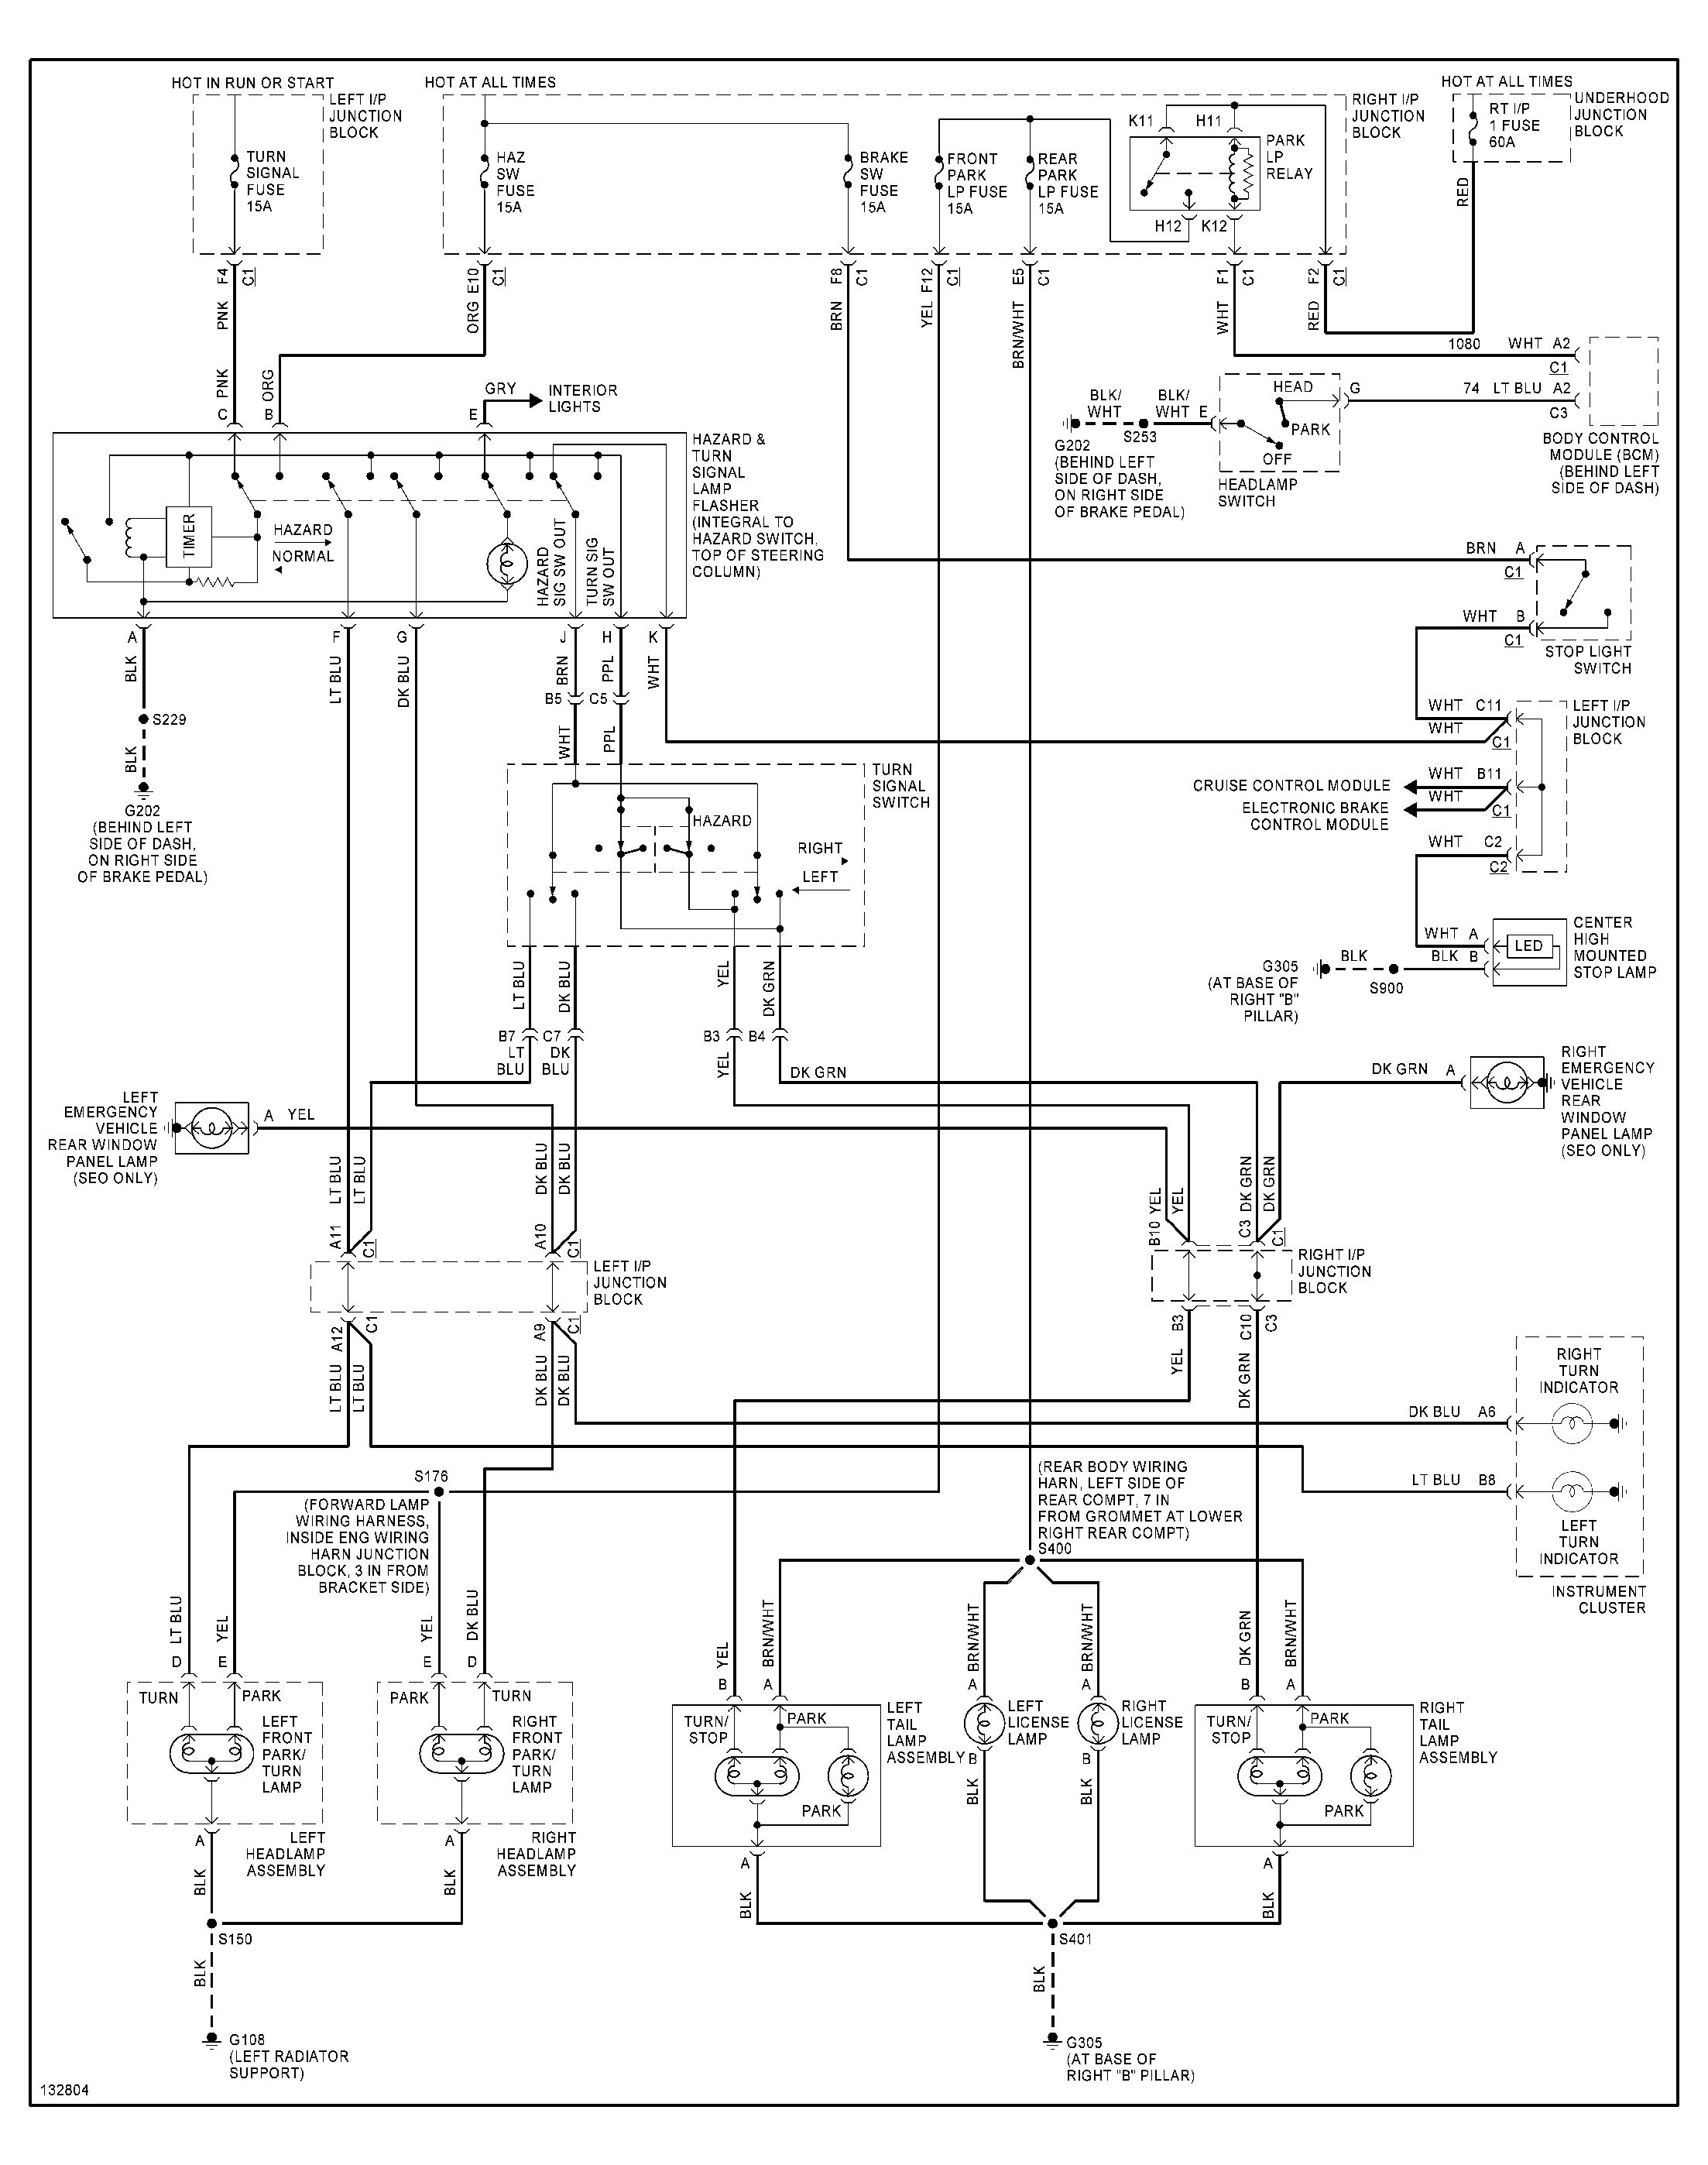 1998 Silverado Trailer Wiring Diagram 1968 Camaro Tic Toc Tach Wiring Diagram For Wiring Diagram Schematics